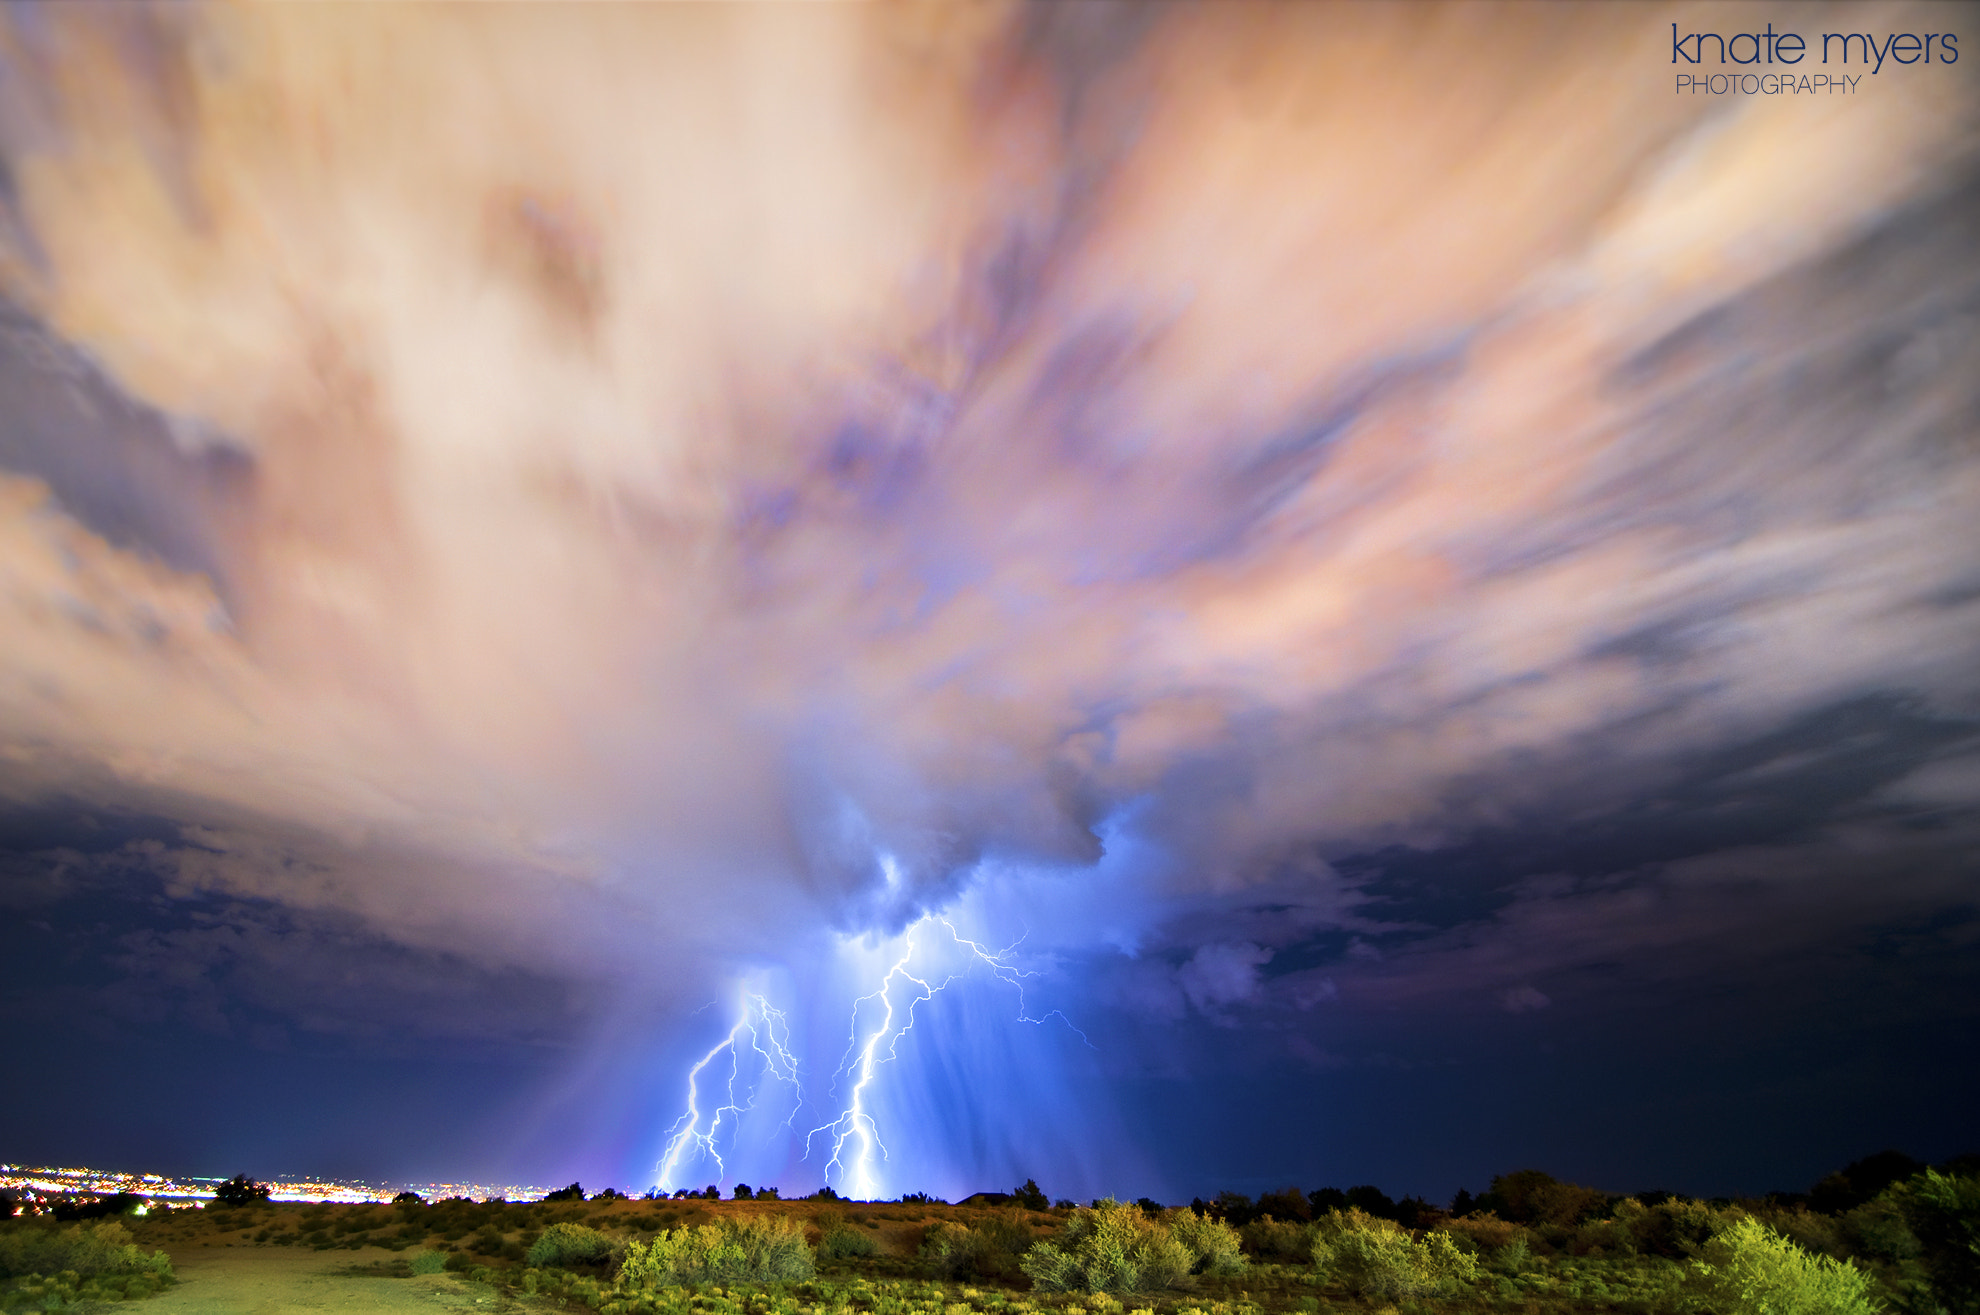 Photograph Albuquerque Lightning by Knate Myers on 500px